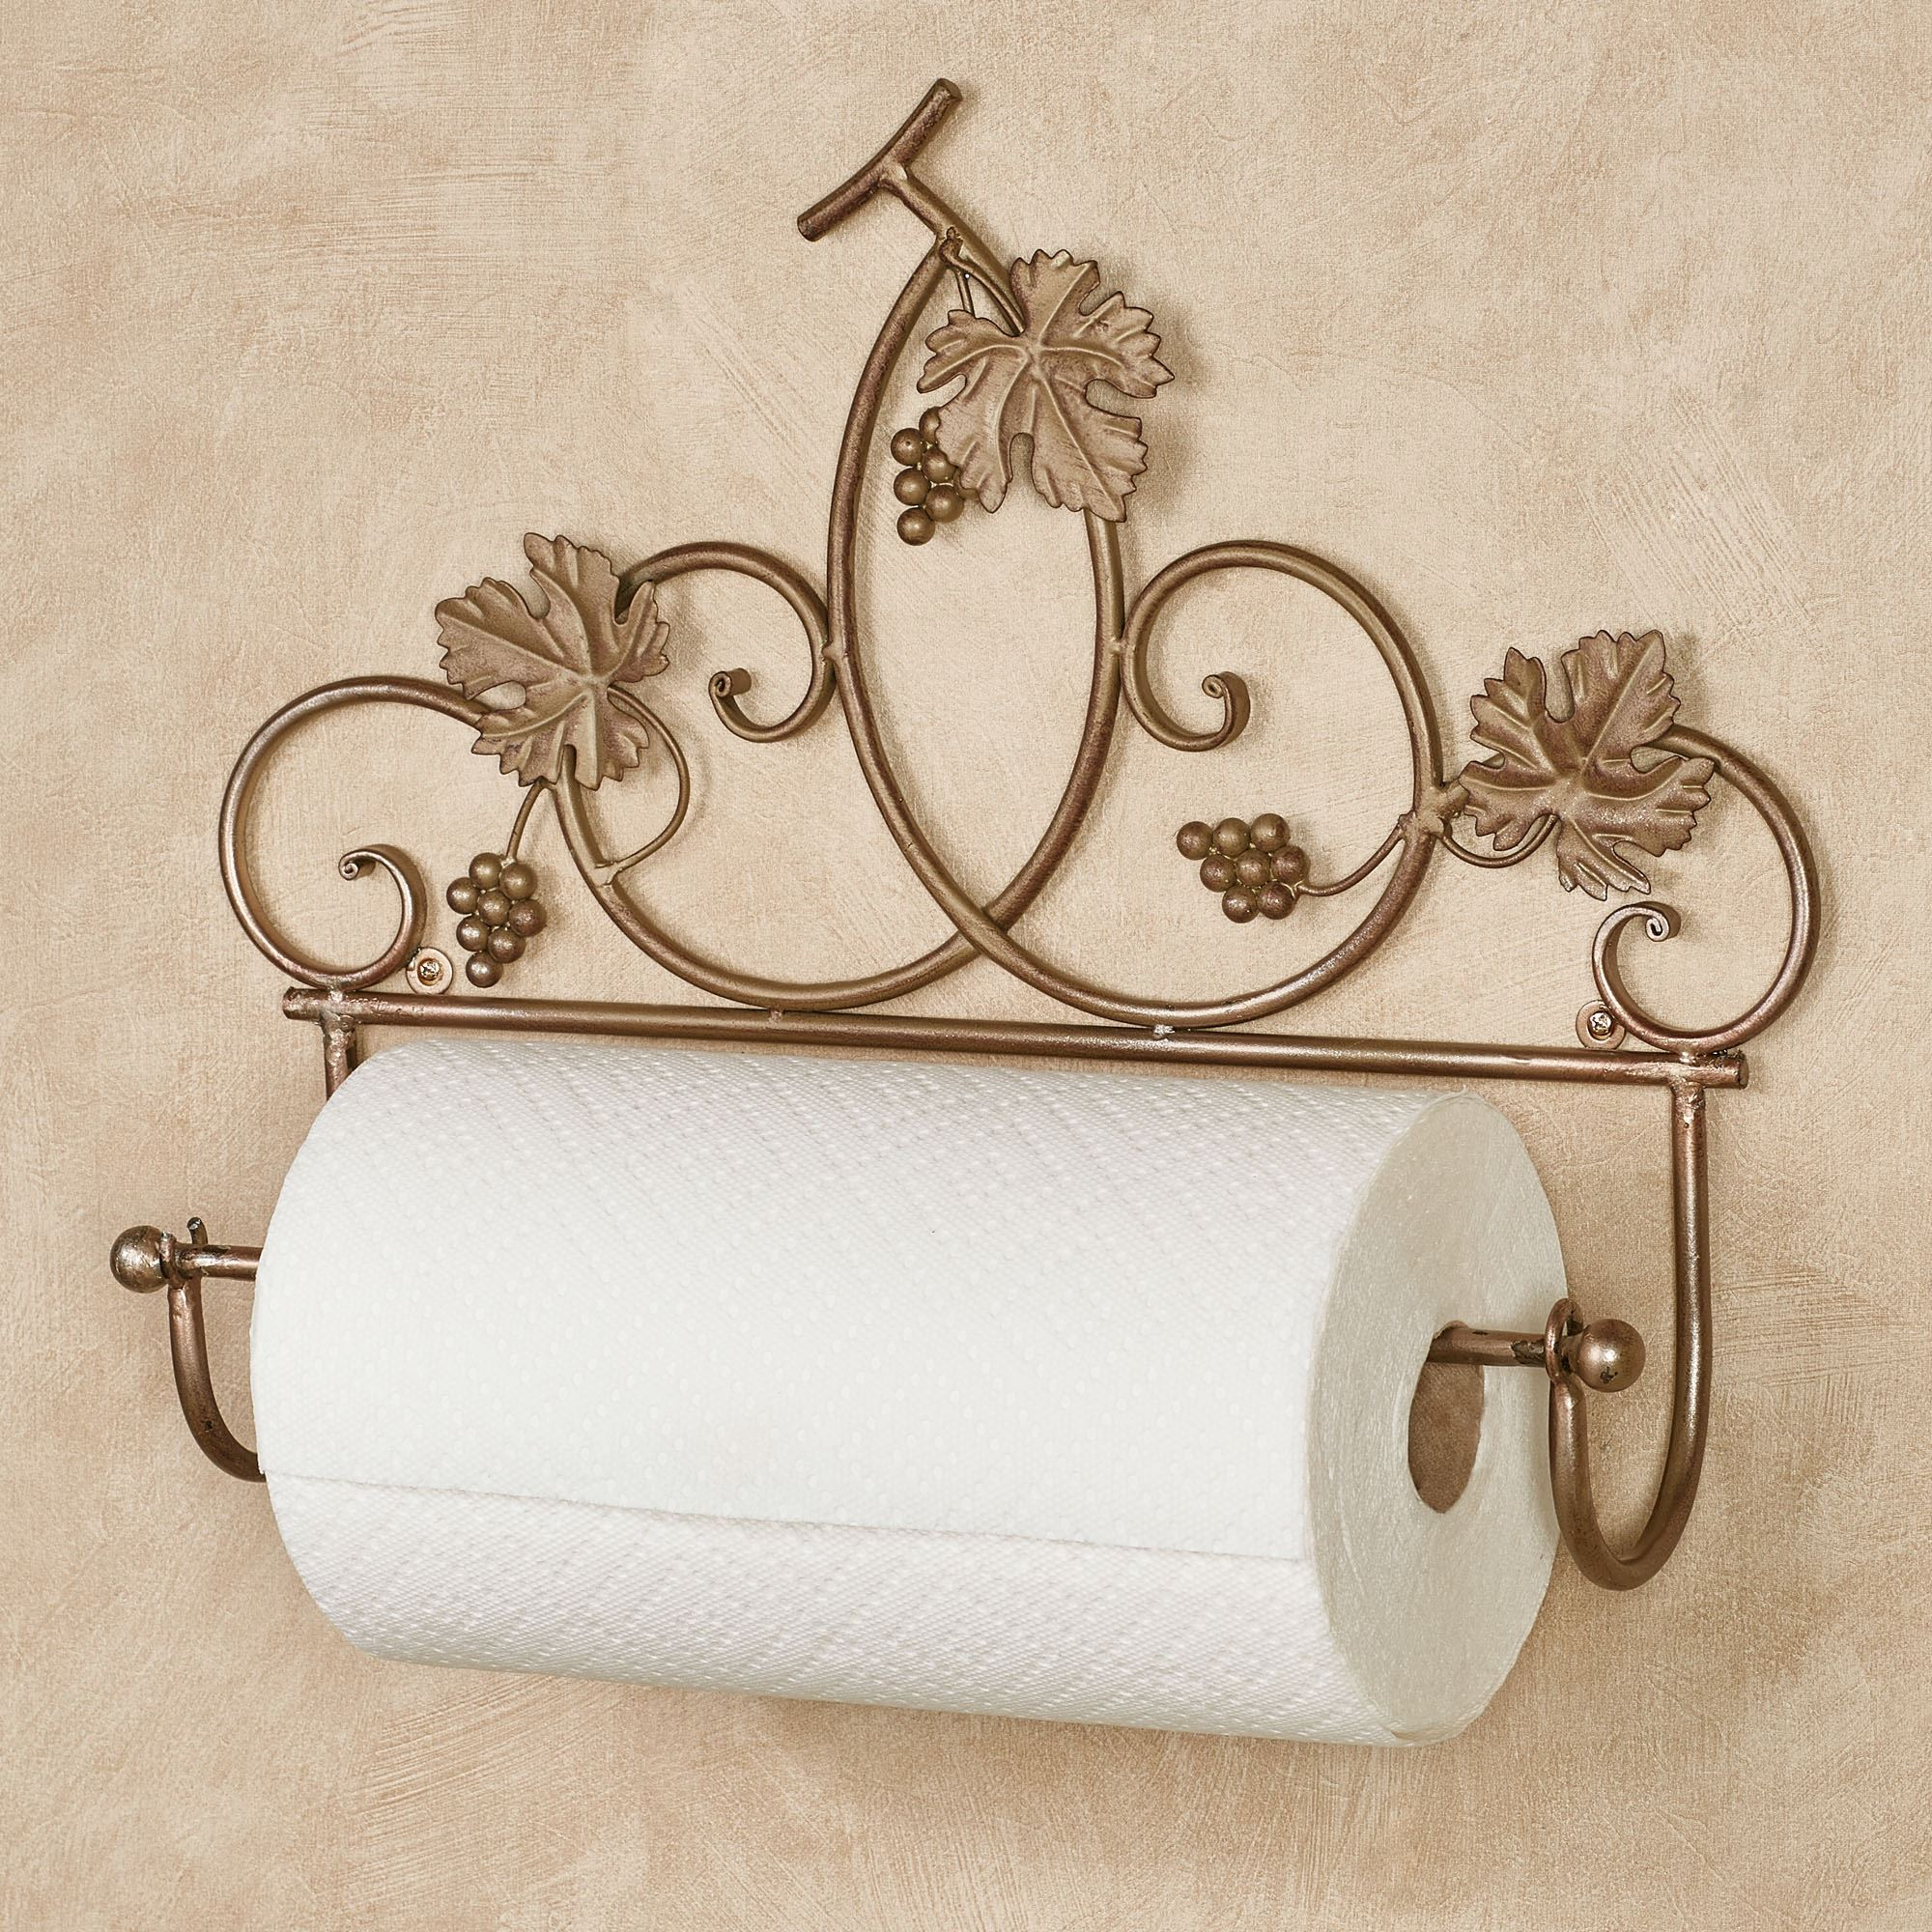 Grapevine Wall Mount Paper Towel Holder